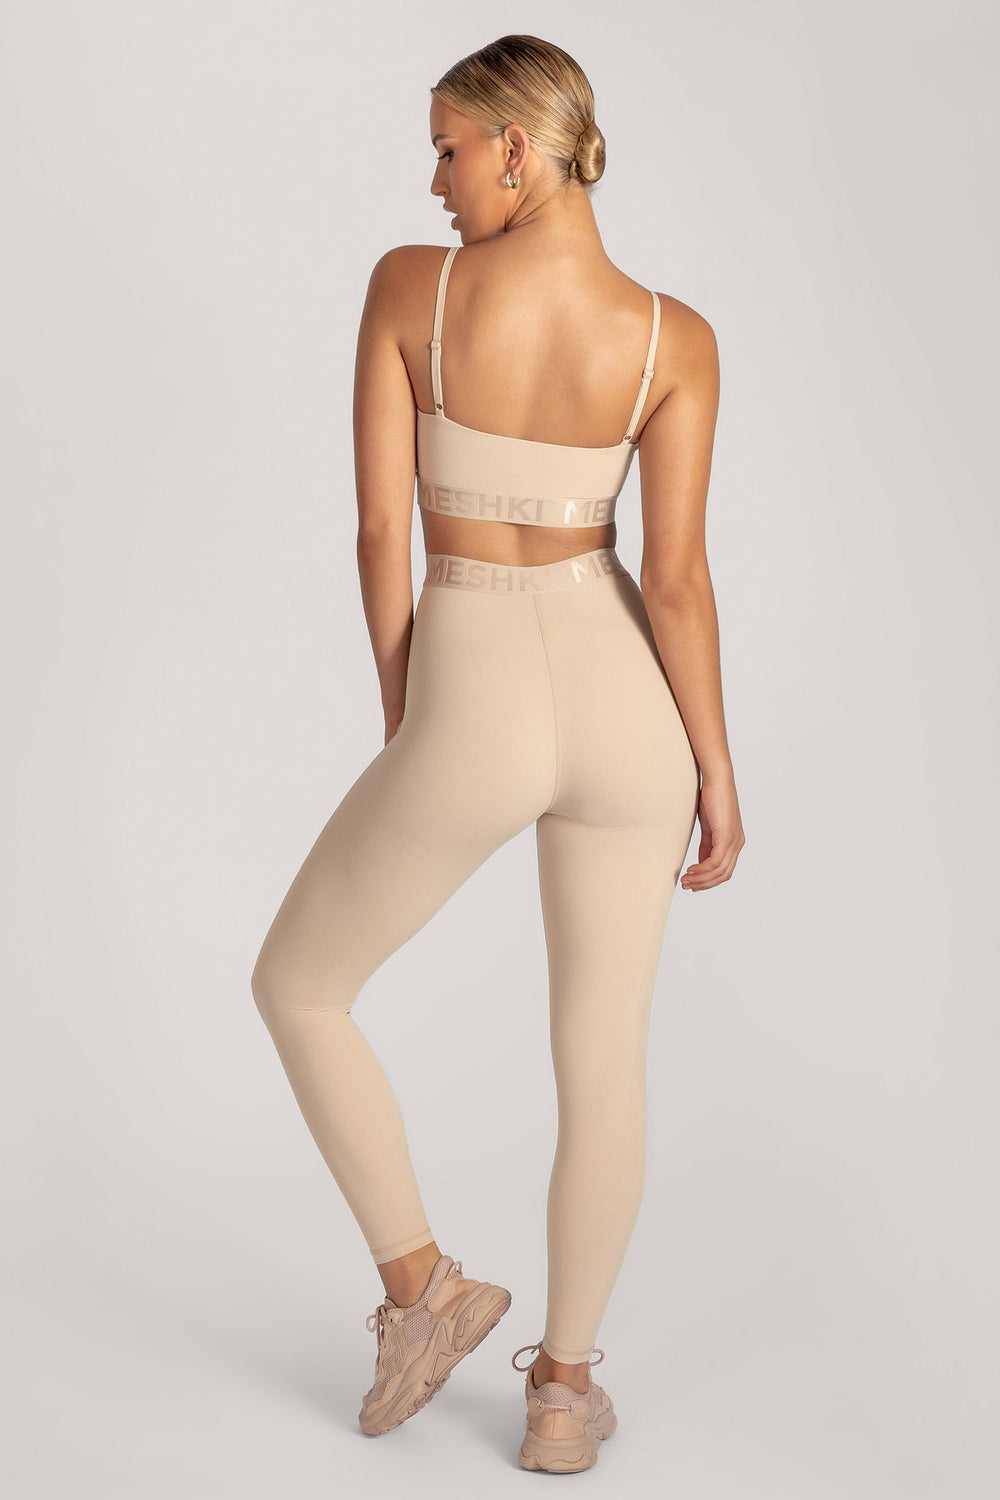 Acacia Meshki Full Length Leggings - Nude - MESHKI ?id=16076117082187